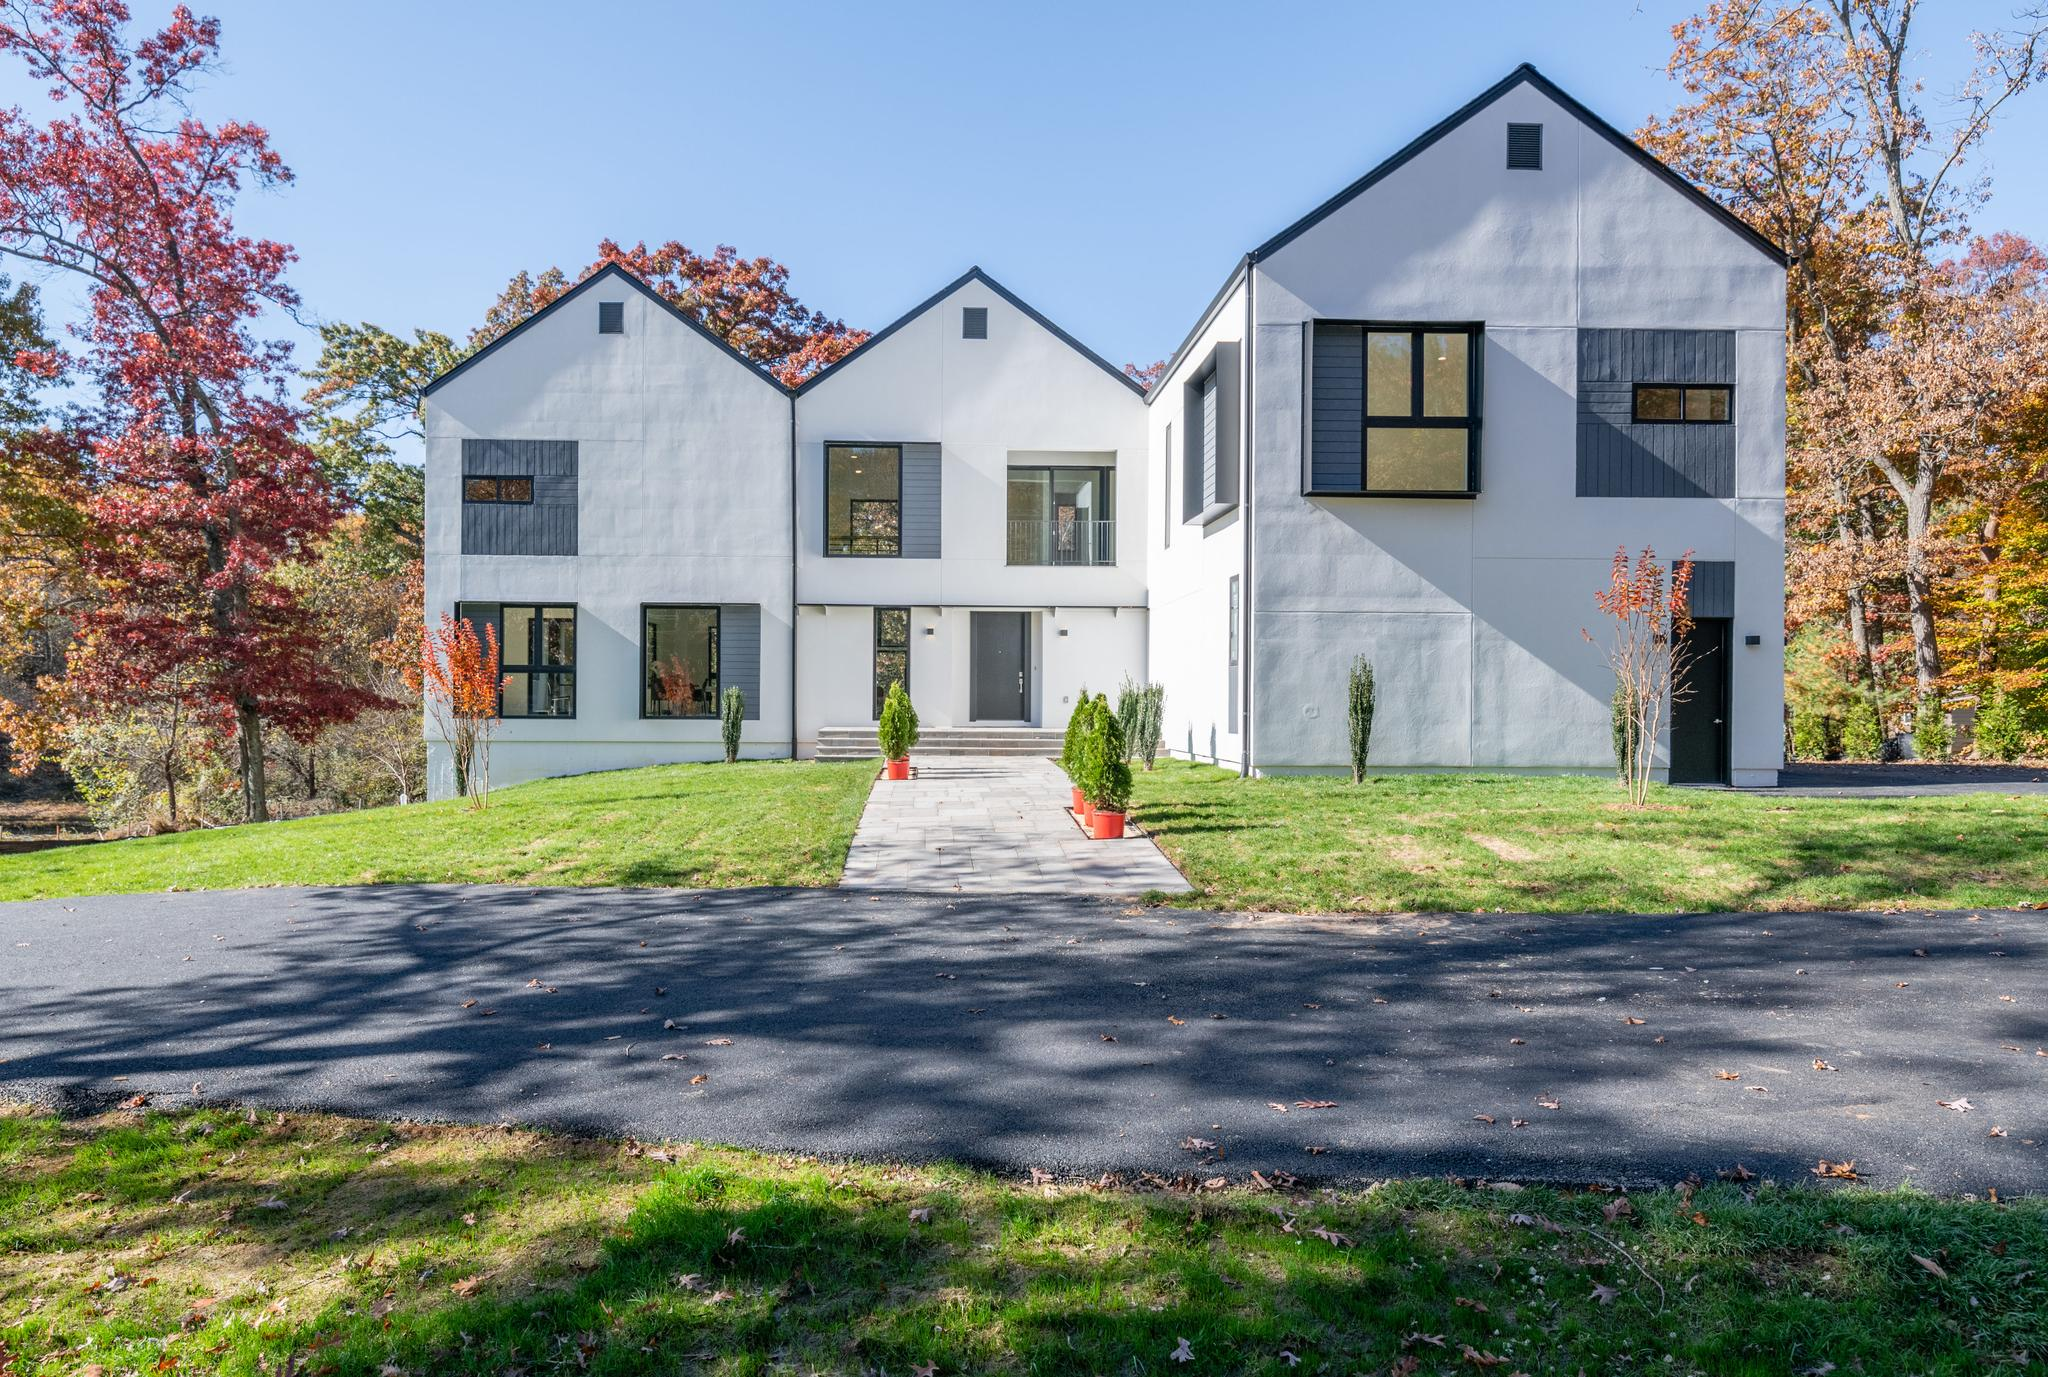 Single Family Home for Sale at 4400 Olley Lane 4400 Olley Lane Fairfax, Virginia 22032 United States